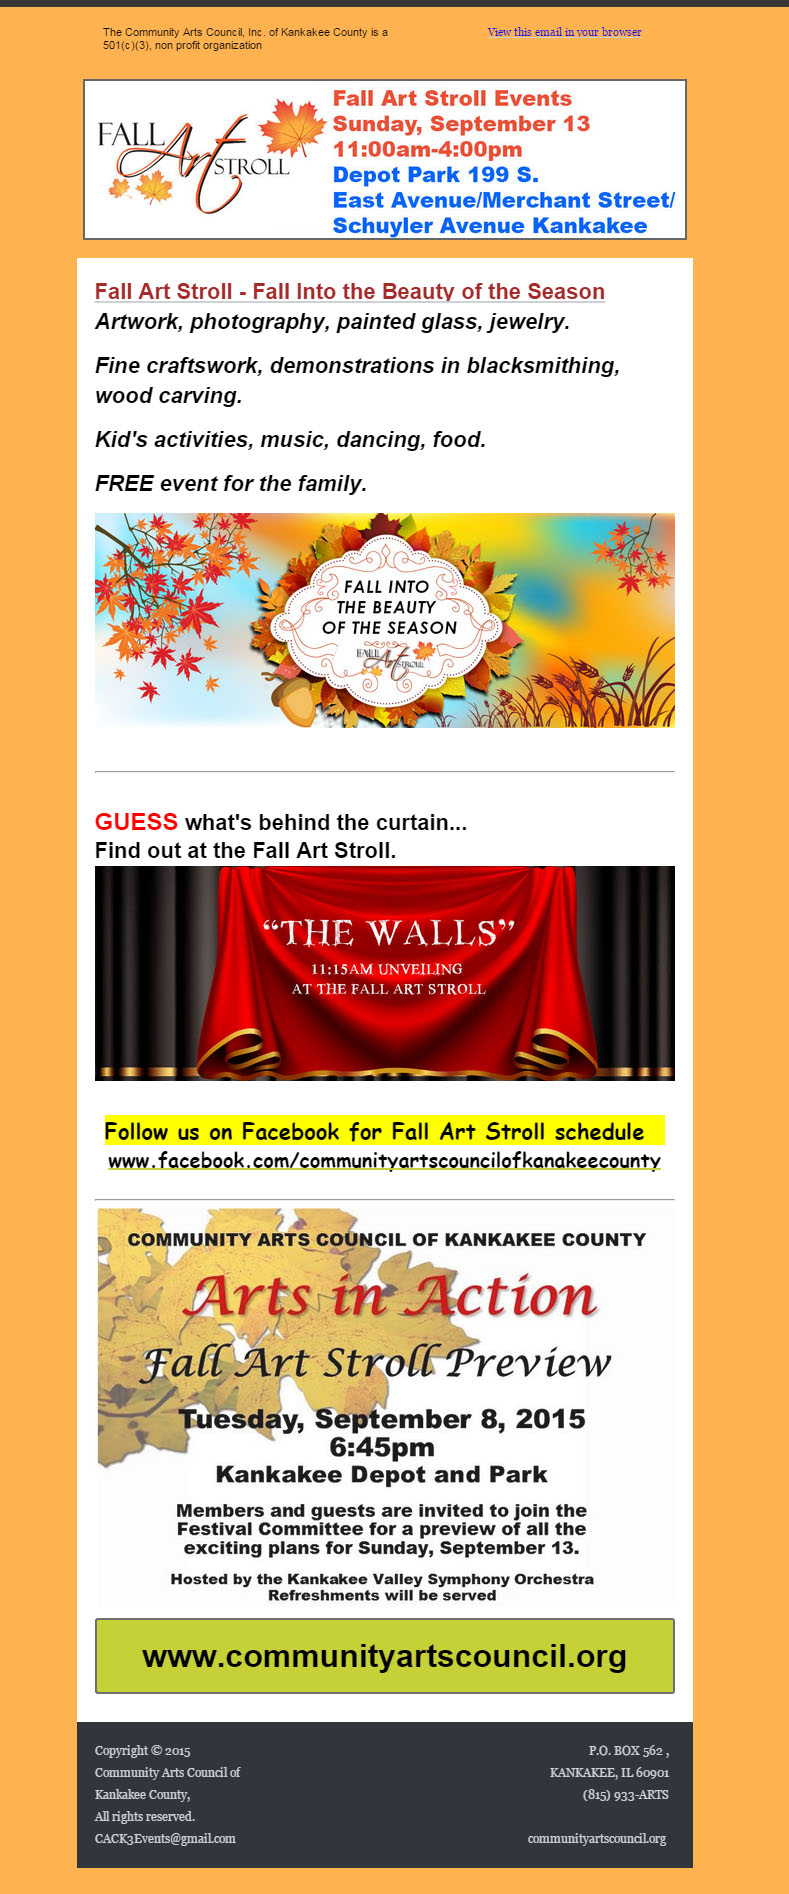 Newsletters — Community Arts Council